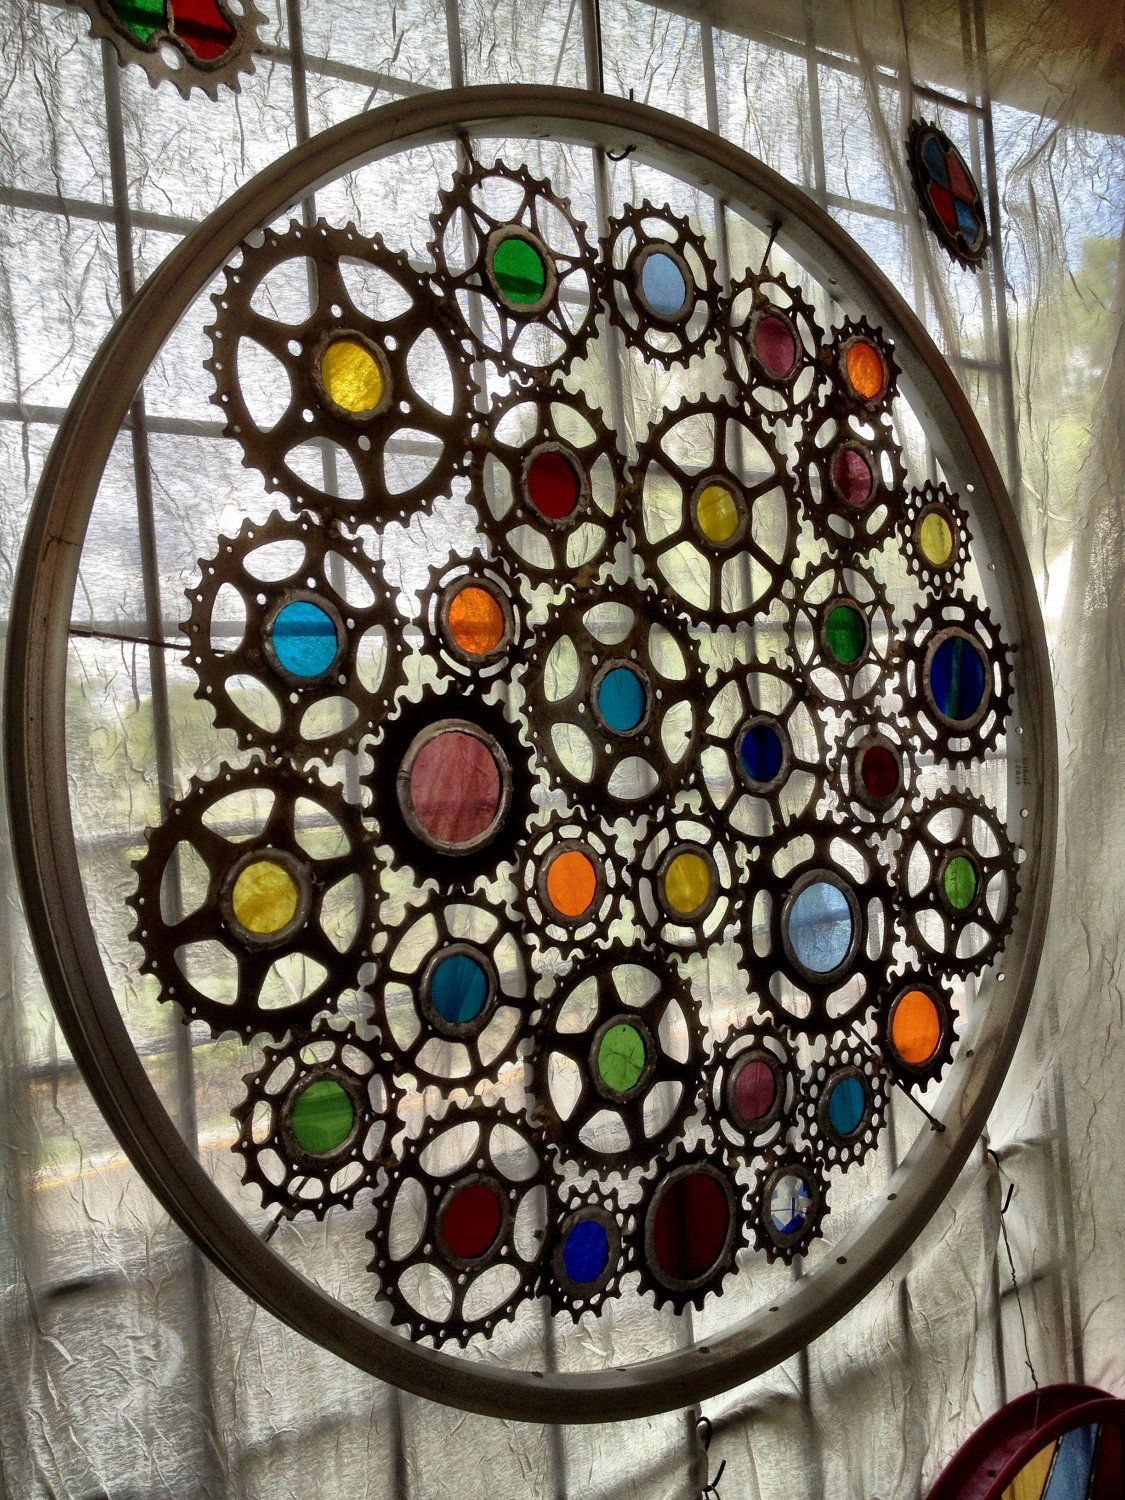 Stained glass bicycle wheel recycled via etsy for Recycled glass art projects